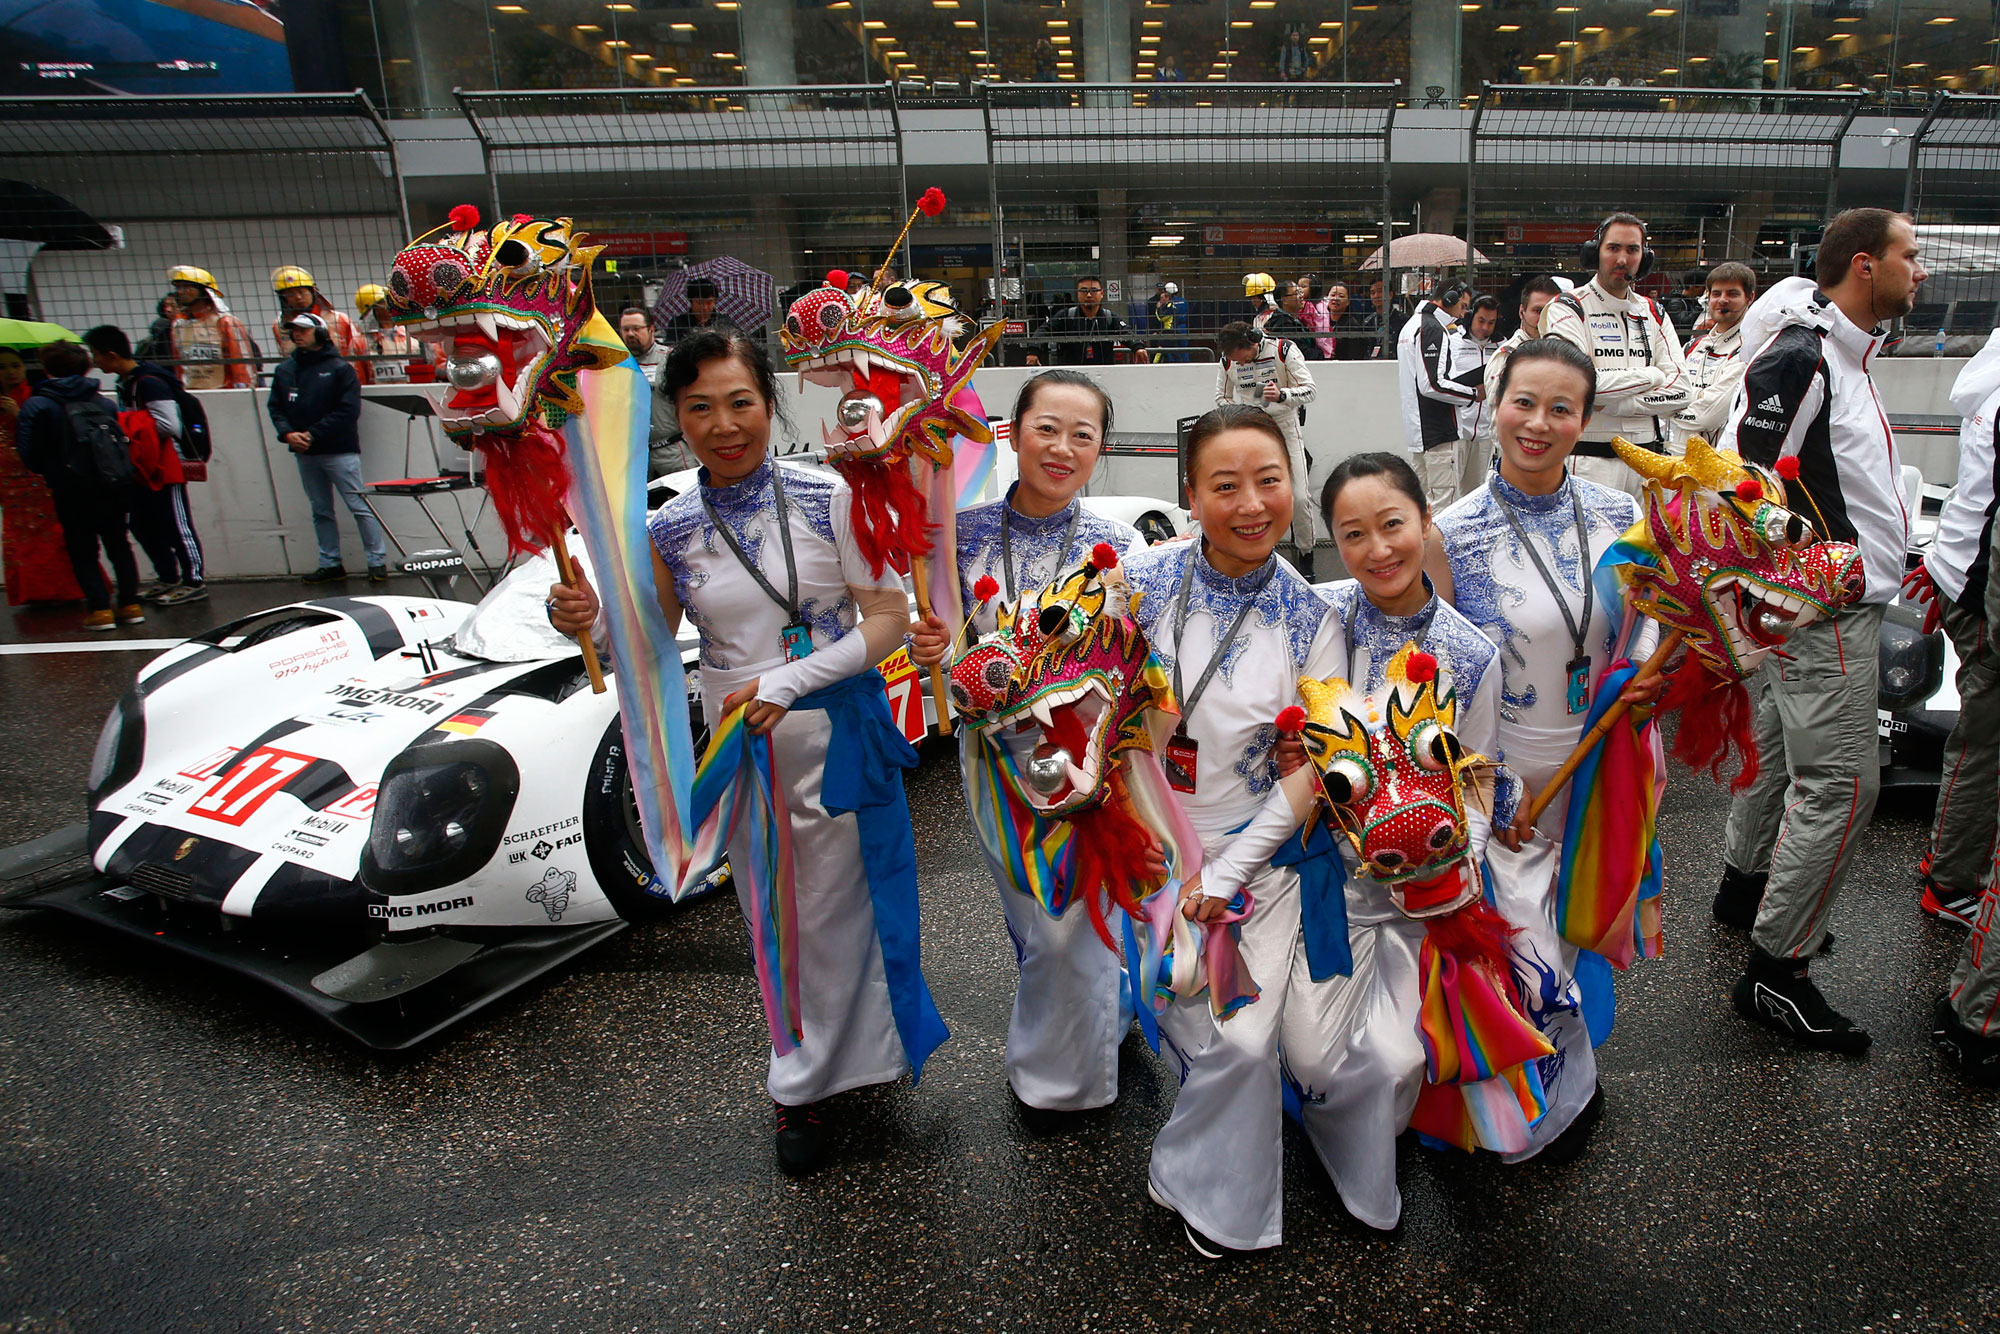 Porsche Score 1-2 in Shanghai To Become FIA WEC World Champions For 2015 14